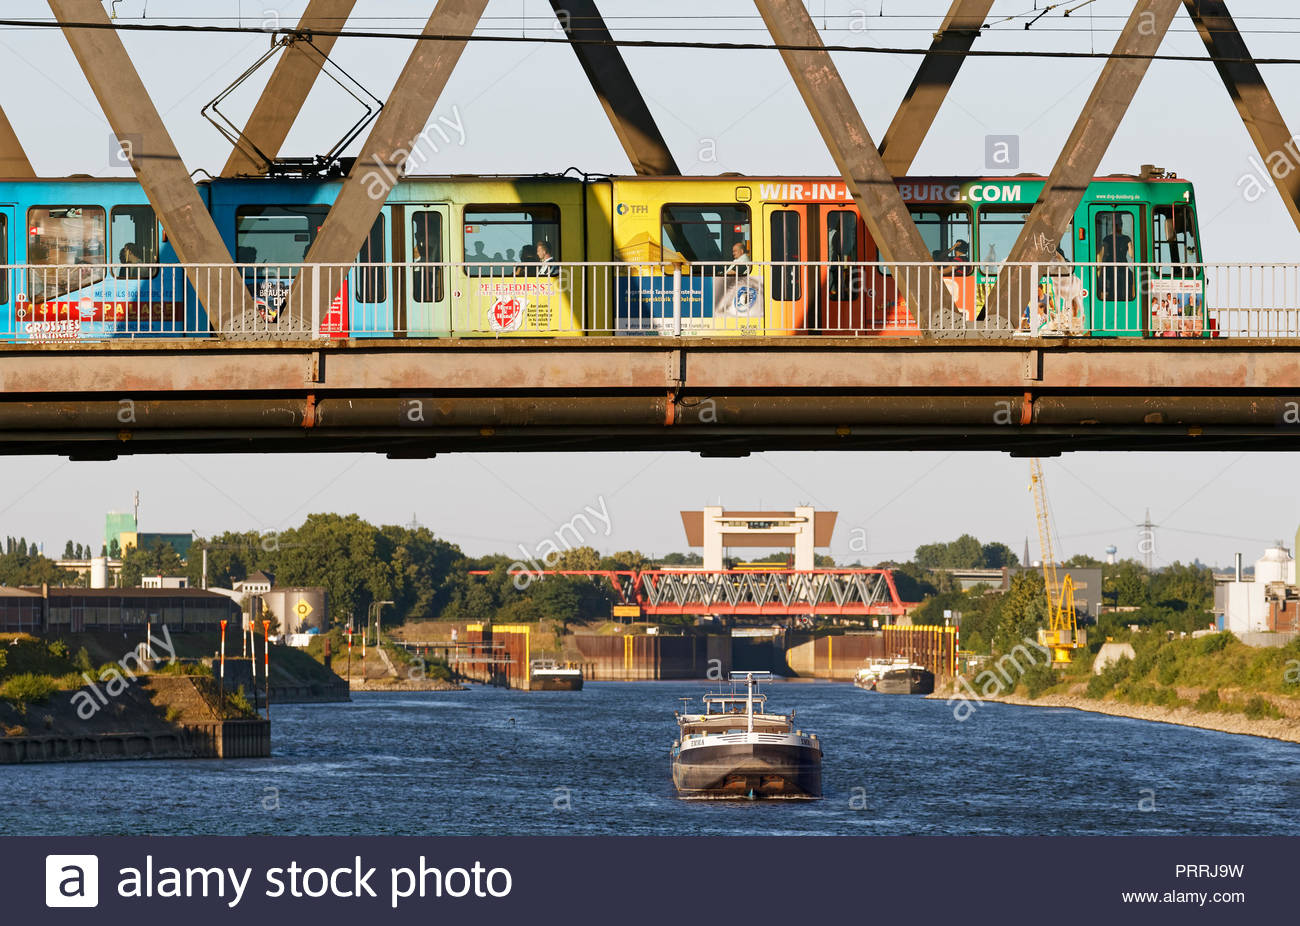 Duisburg Meiderich truss bridge tram streetcar crossing Rhine-Herne-Canal waterway cargo boat lock sluice gate tower water transport inland port - Stock Image